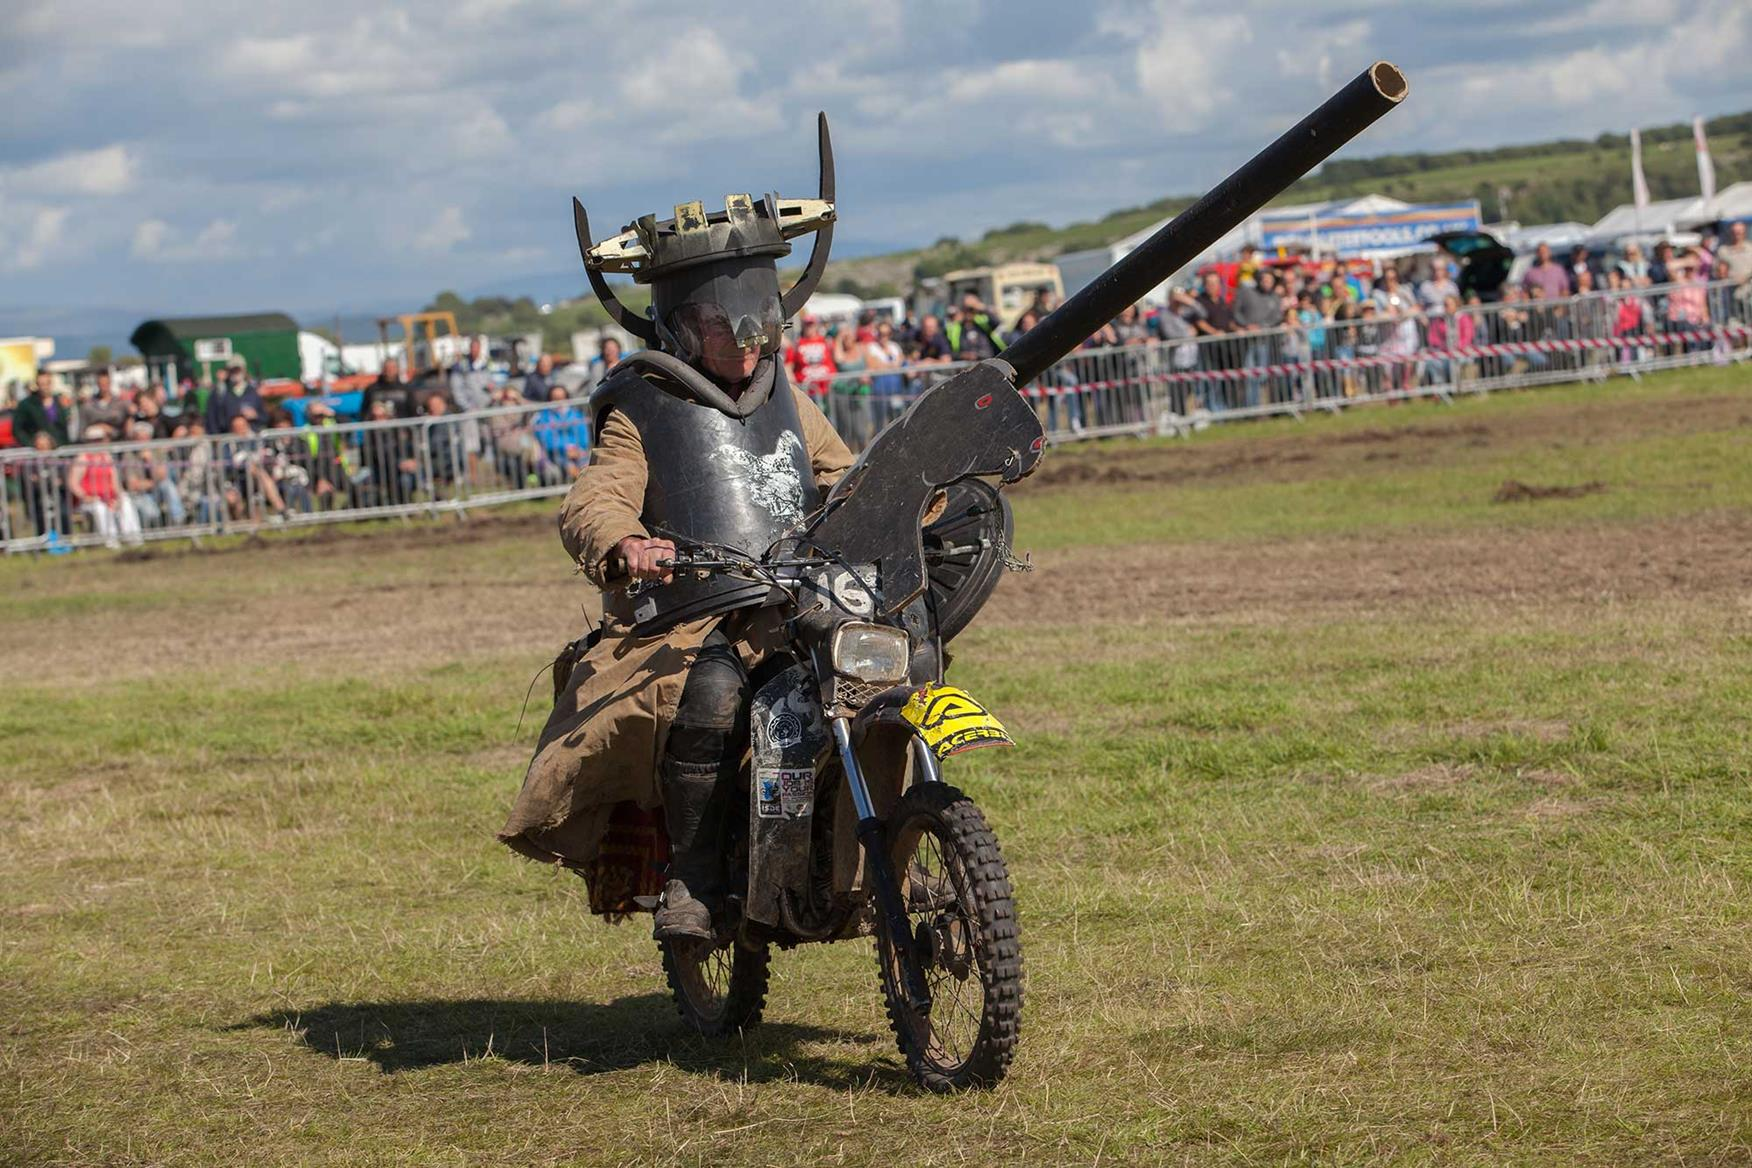 A member of the Purple Helmets display team